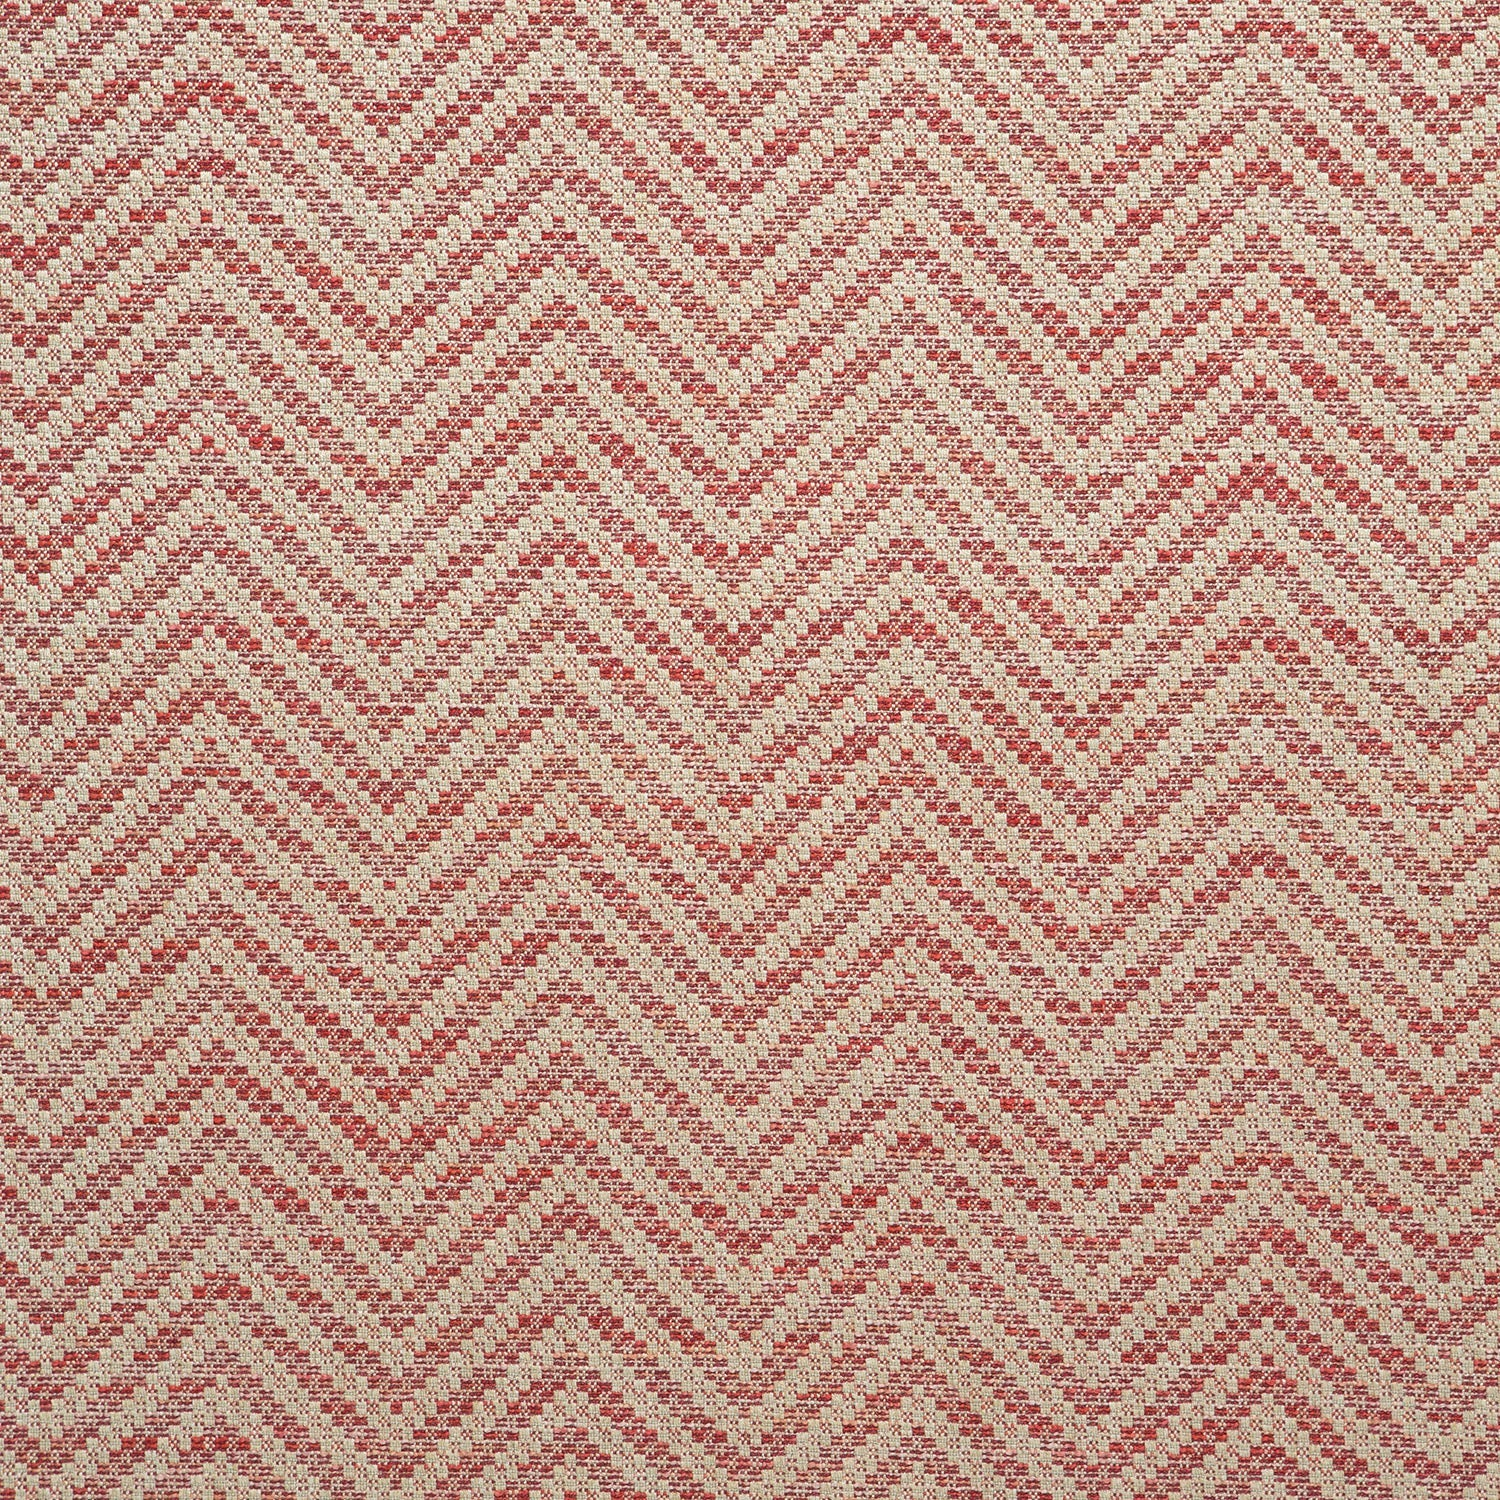 Fabric swatch of a red and neutral herringbone weave fabric for curtains and upholstery